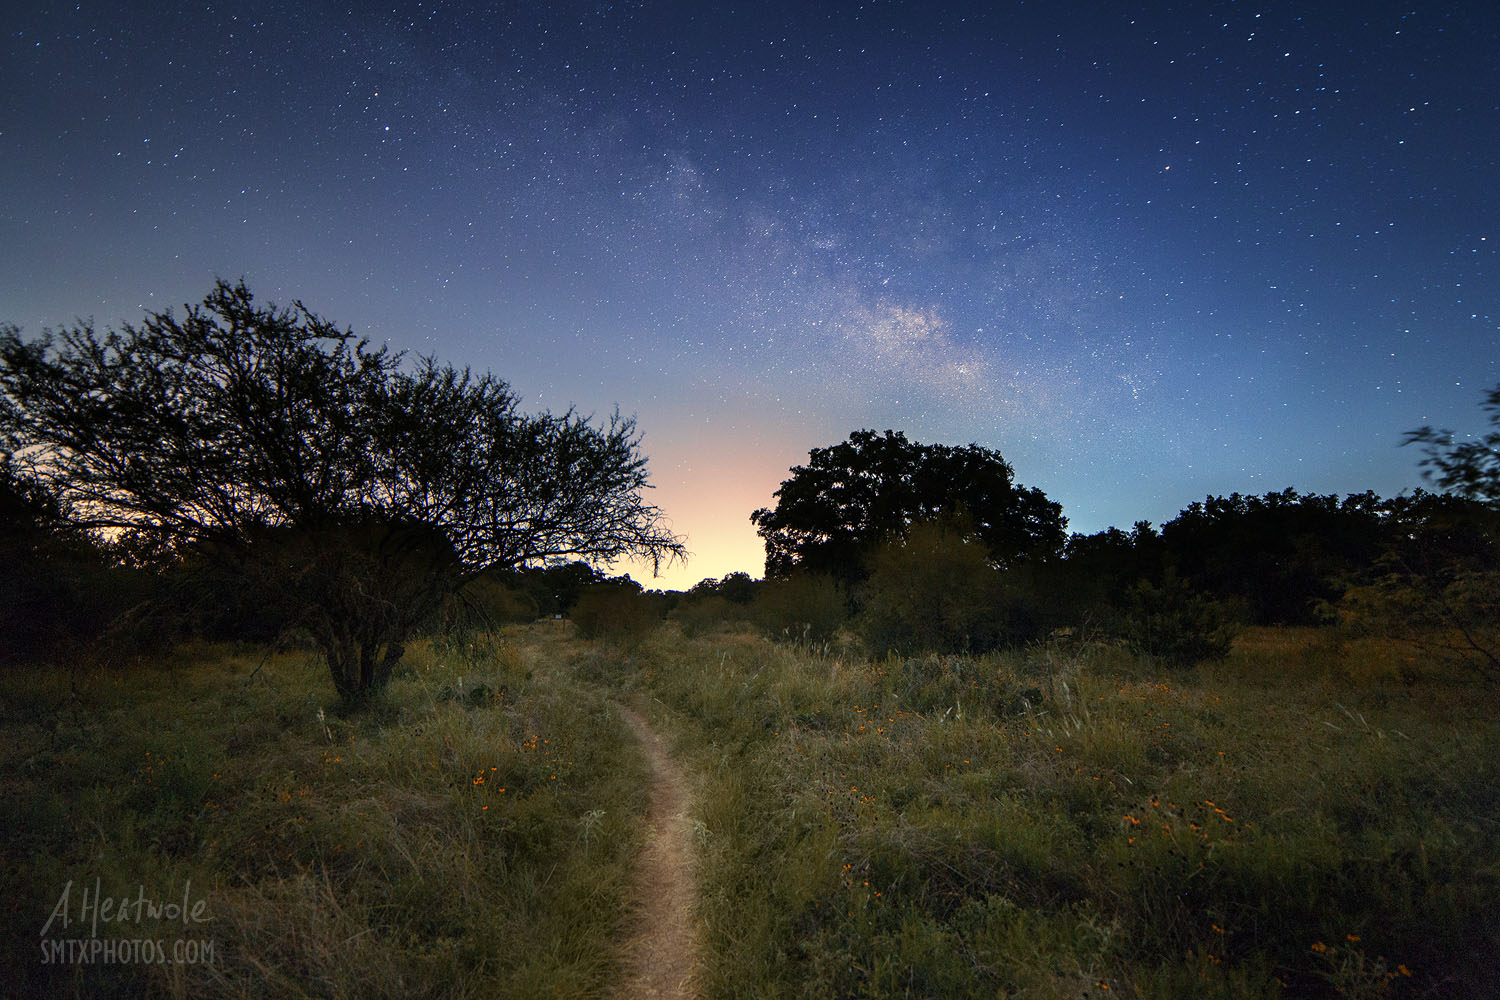 The Milky Way over Purgatory Creek Park in San Marcos, TX